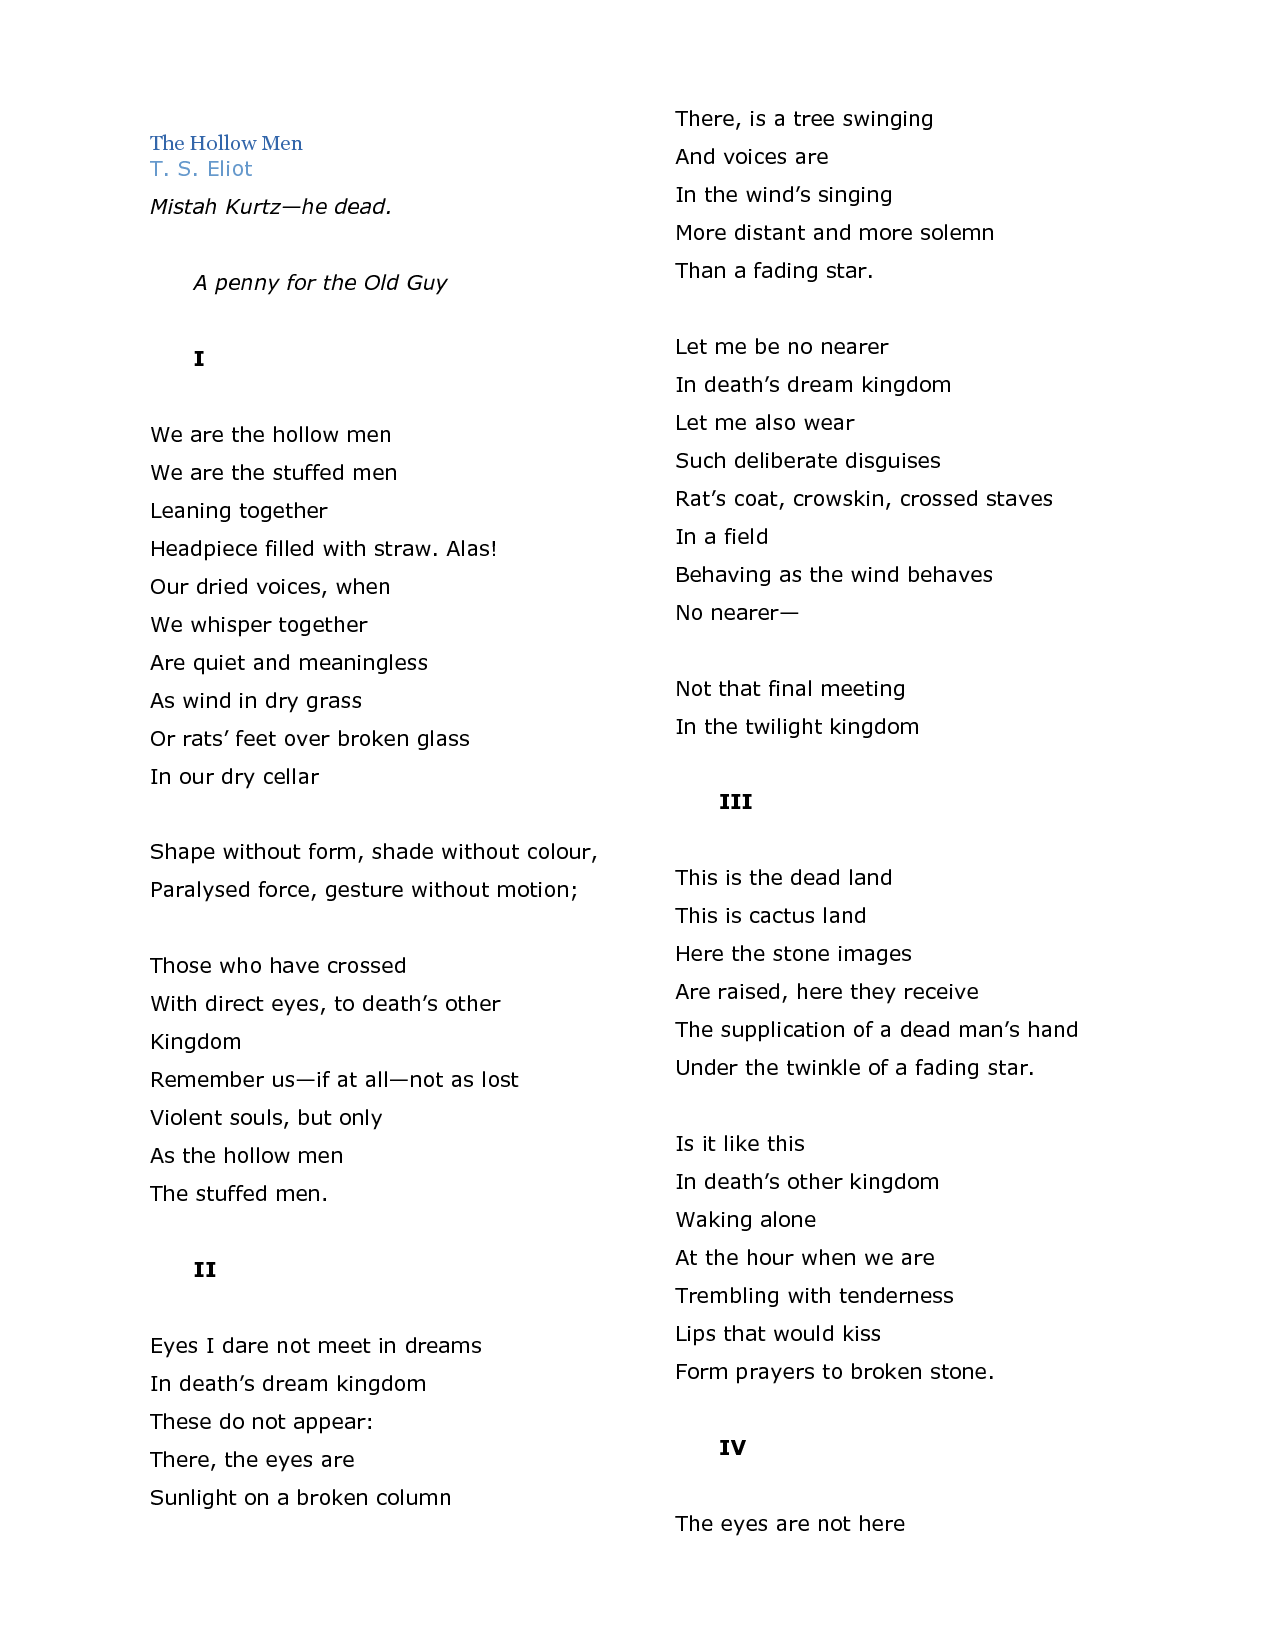 We are the hollow men | Poems | Pinterest | T..., We and Favourite